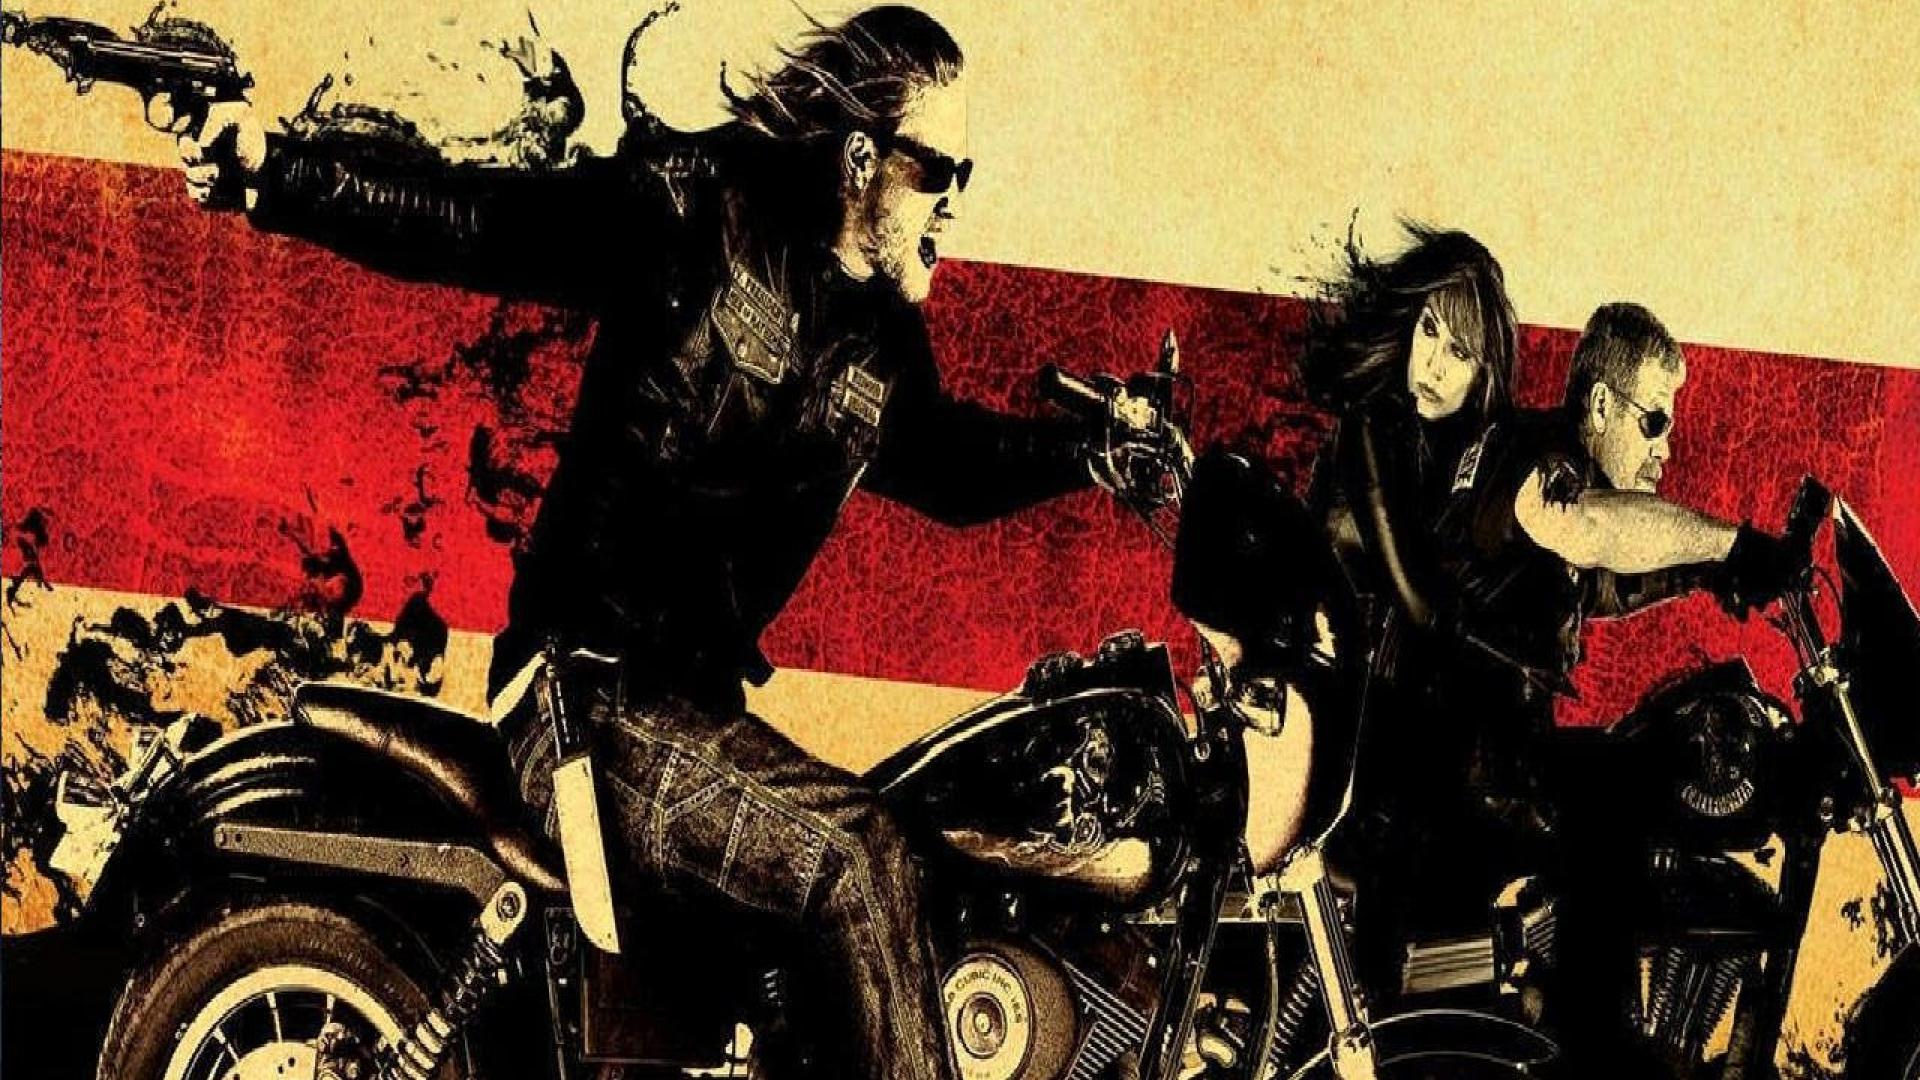 Free Download Sons Of Anarchy Wallpaper 10 1920x1080 For Your